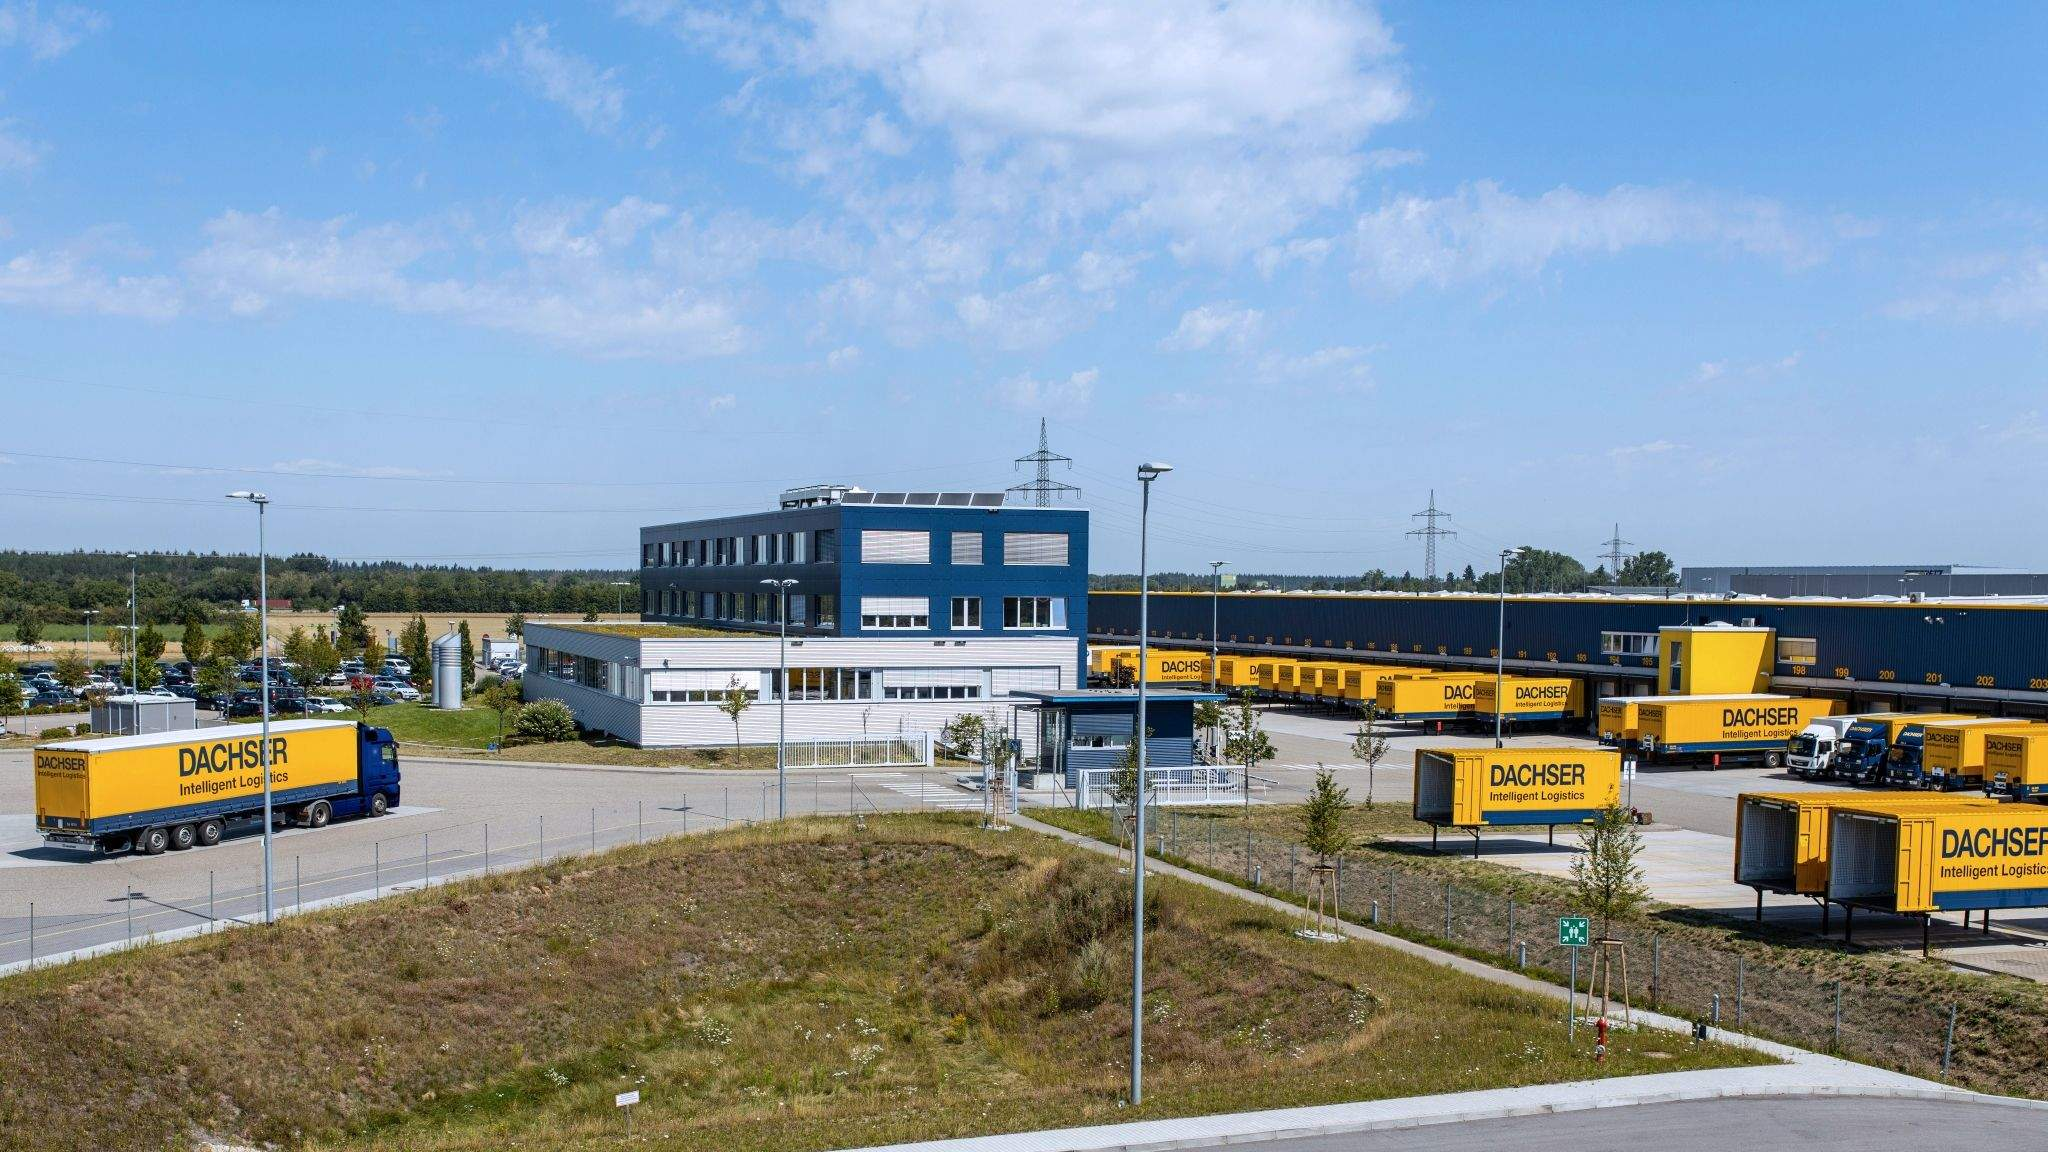 CML's shipment arrives at DACHSER's Logistics Center Karlsruhe